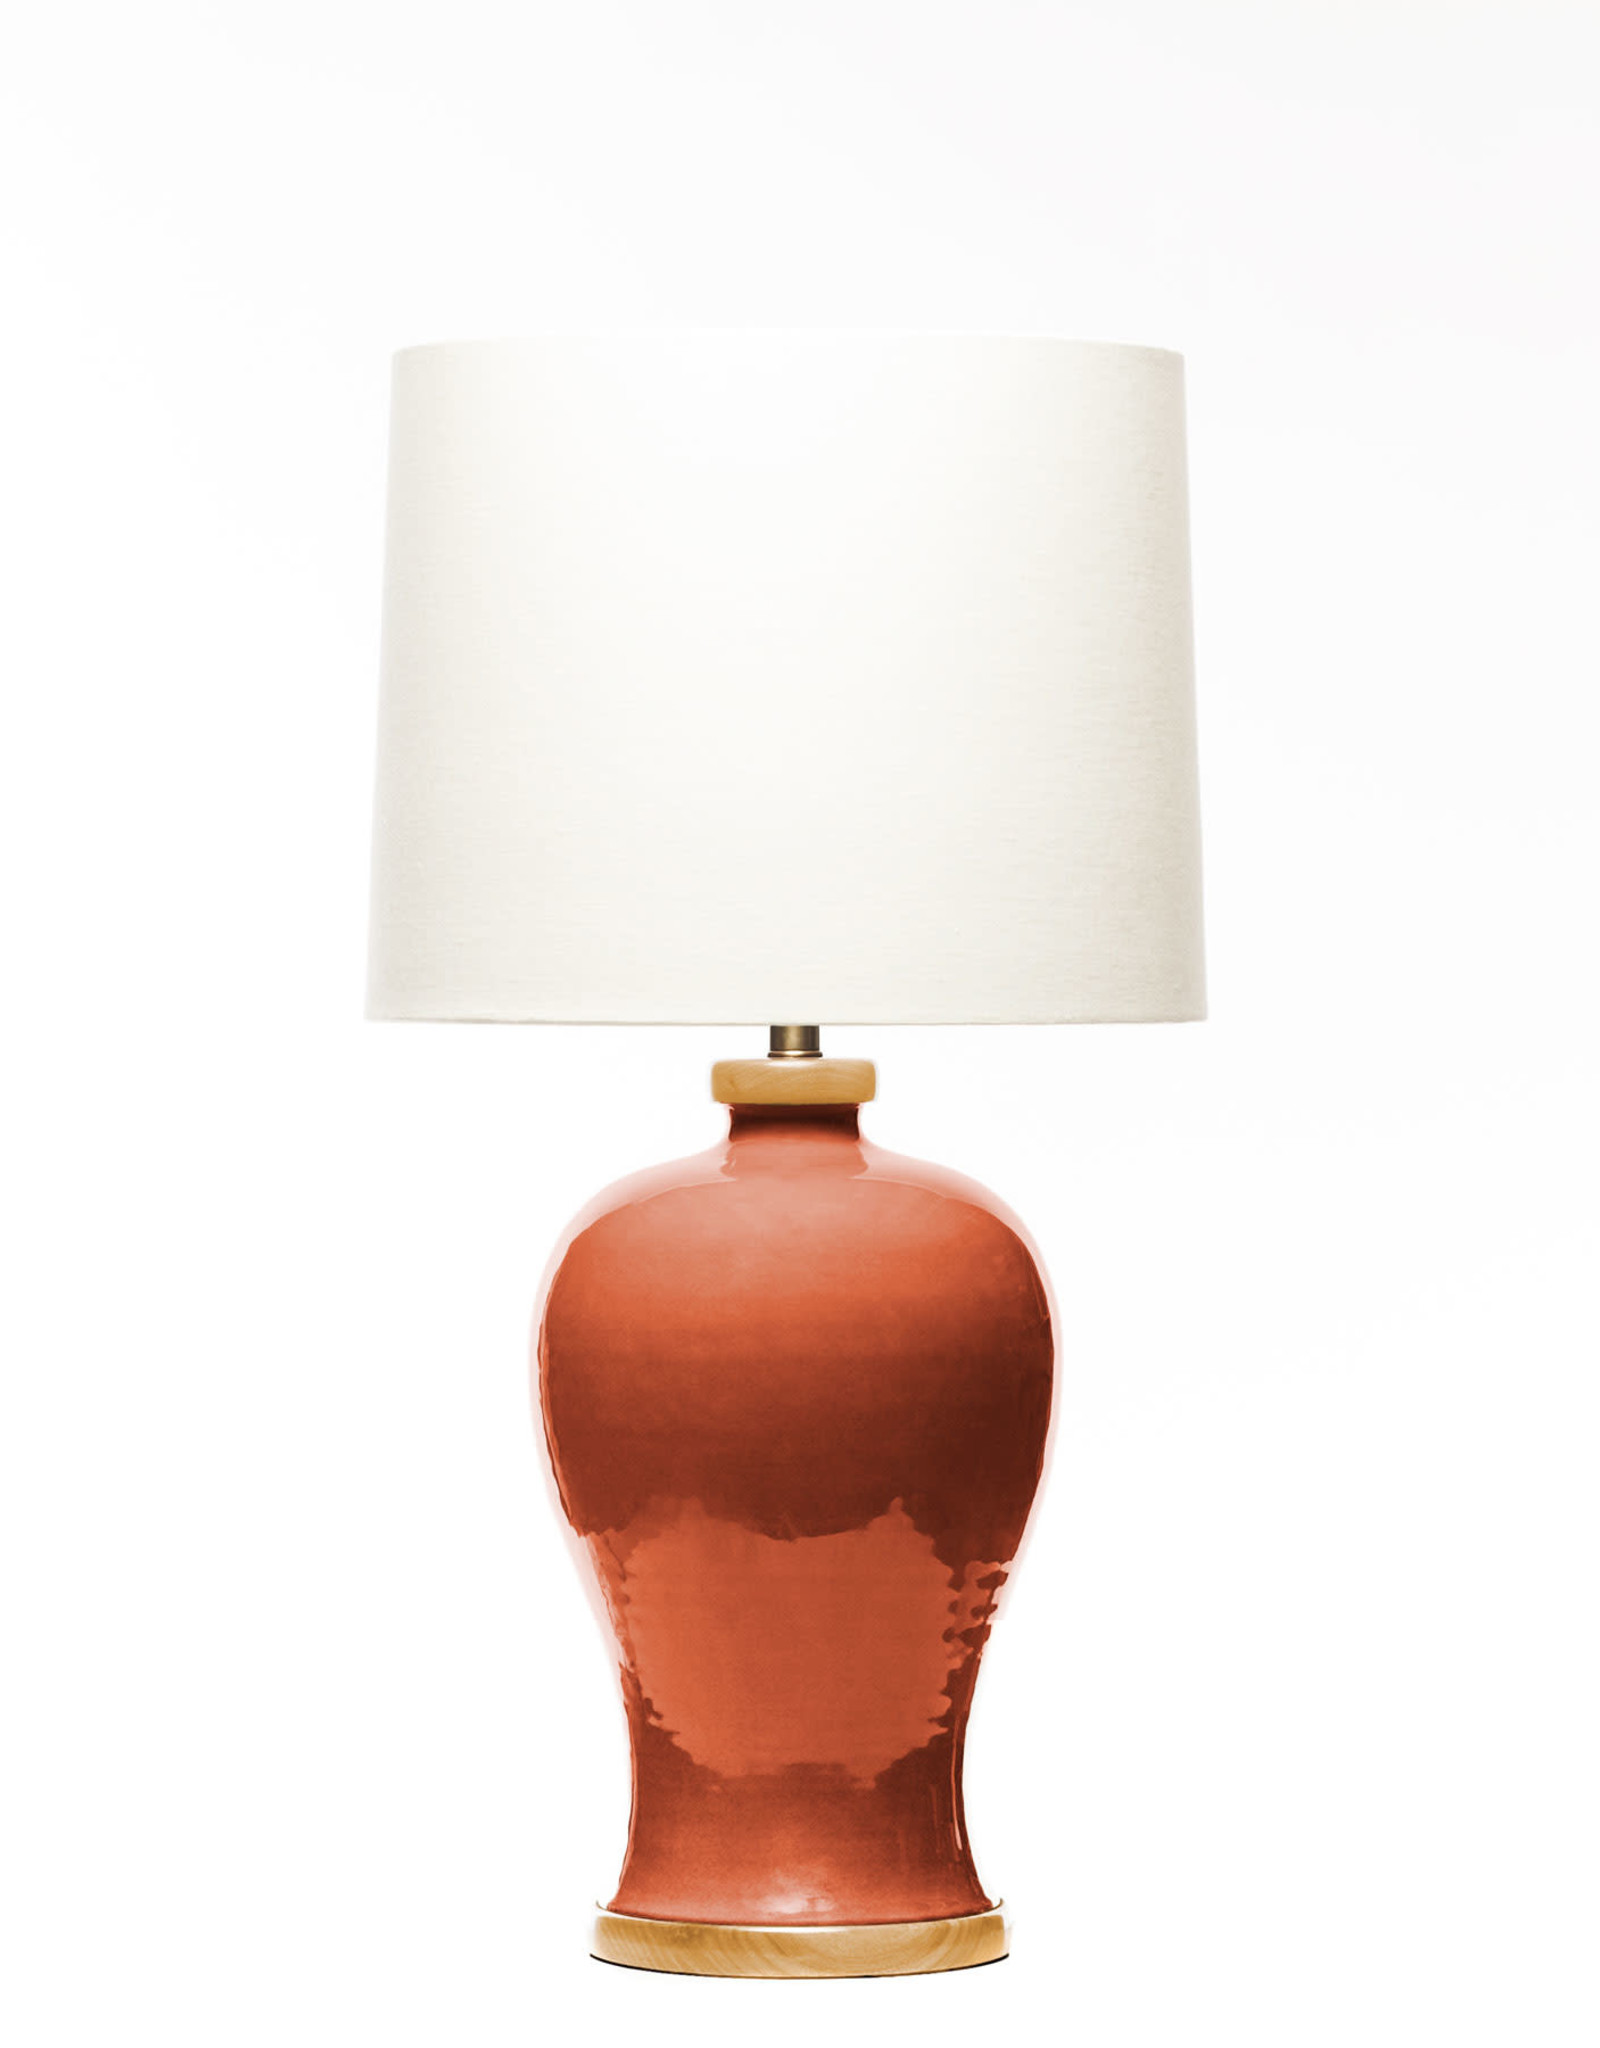 Lawrence & Scott Dashiell Table Lamp in Living Coral with Oak Base